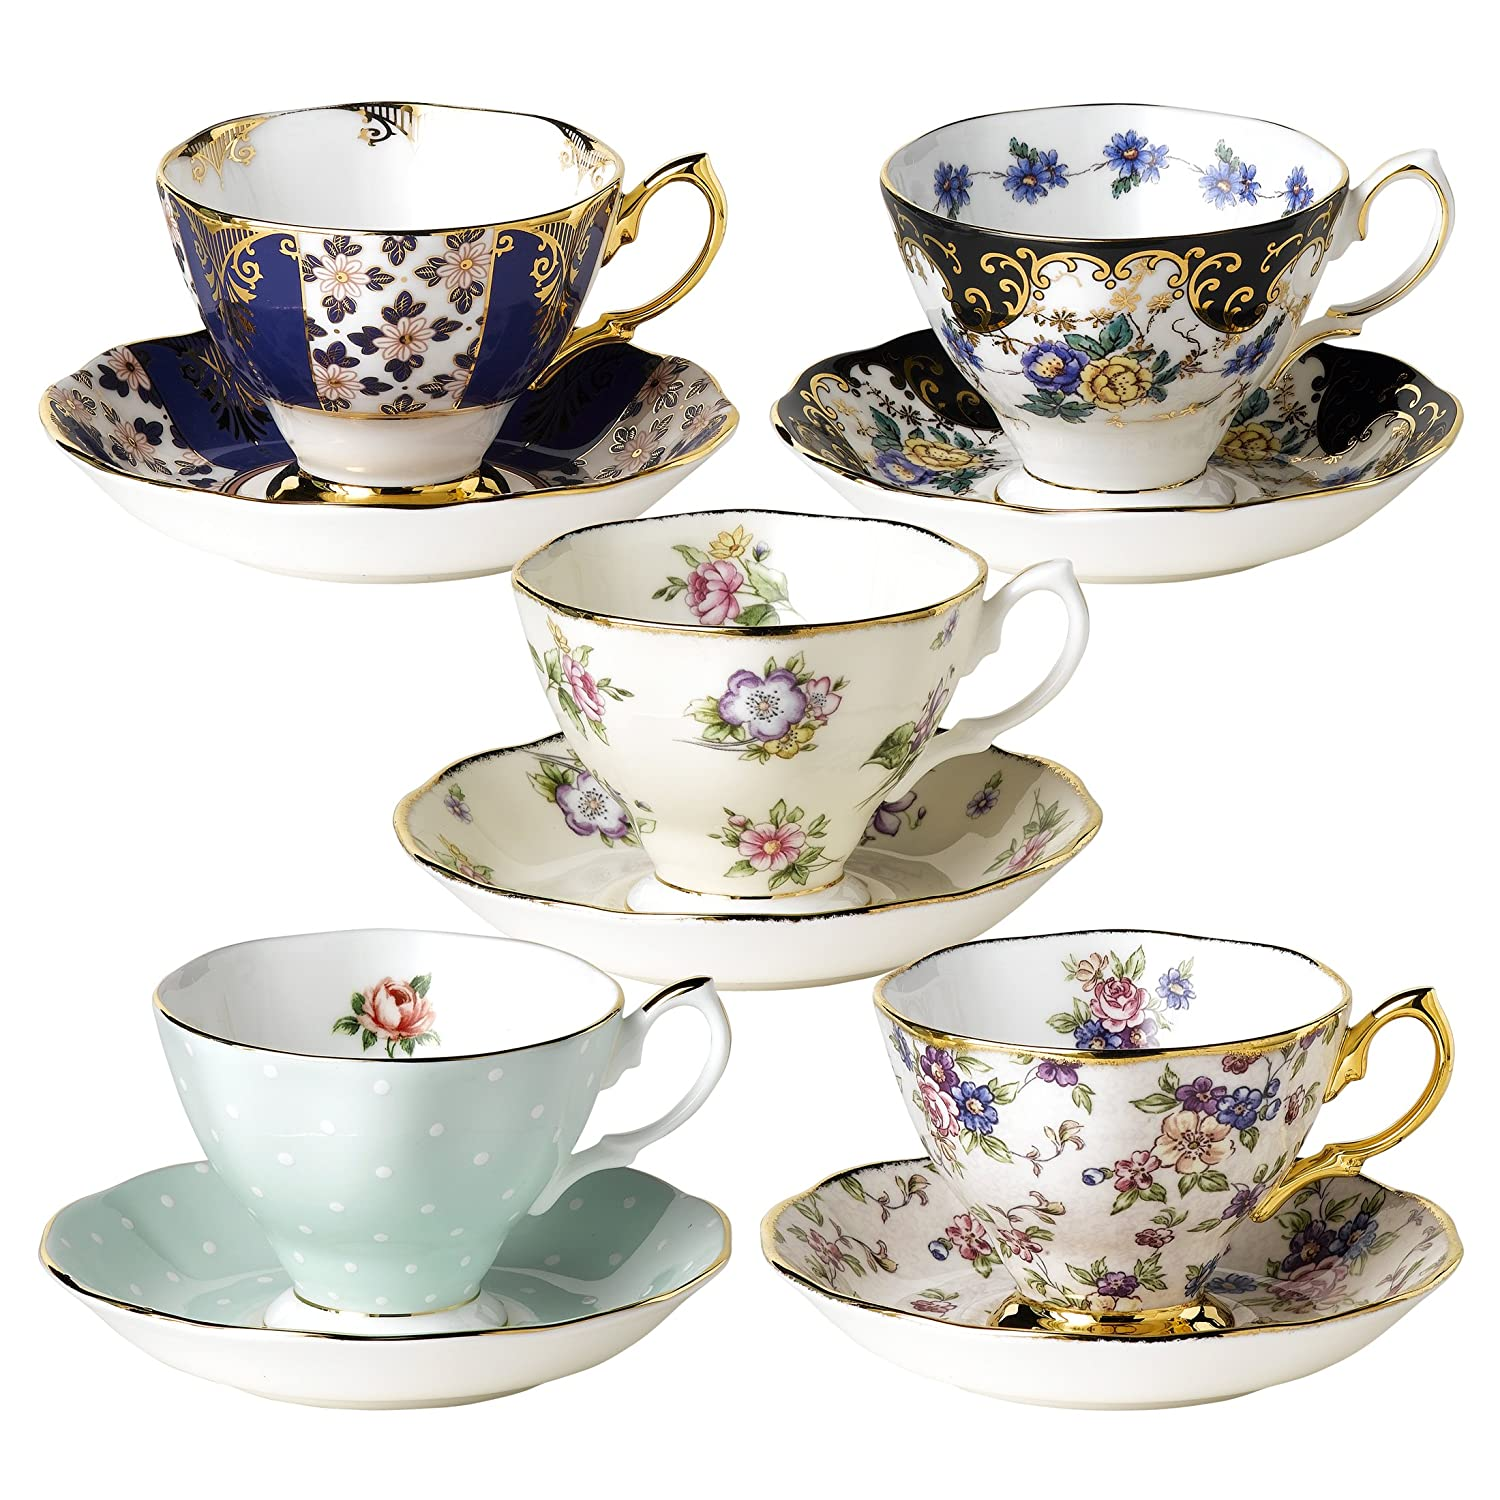 Royal Albert Teacups and Saucers, Set of 5, 1900-1940